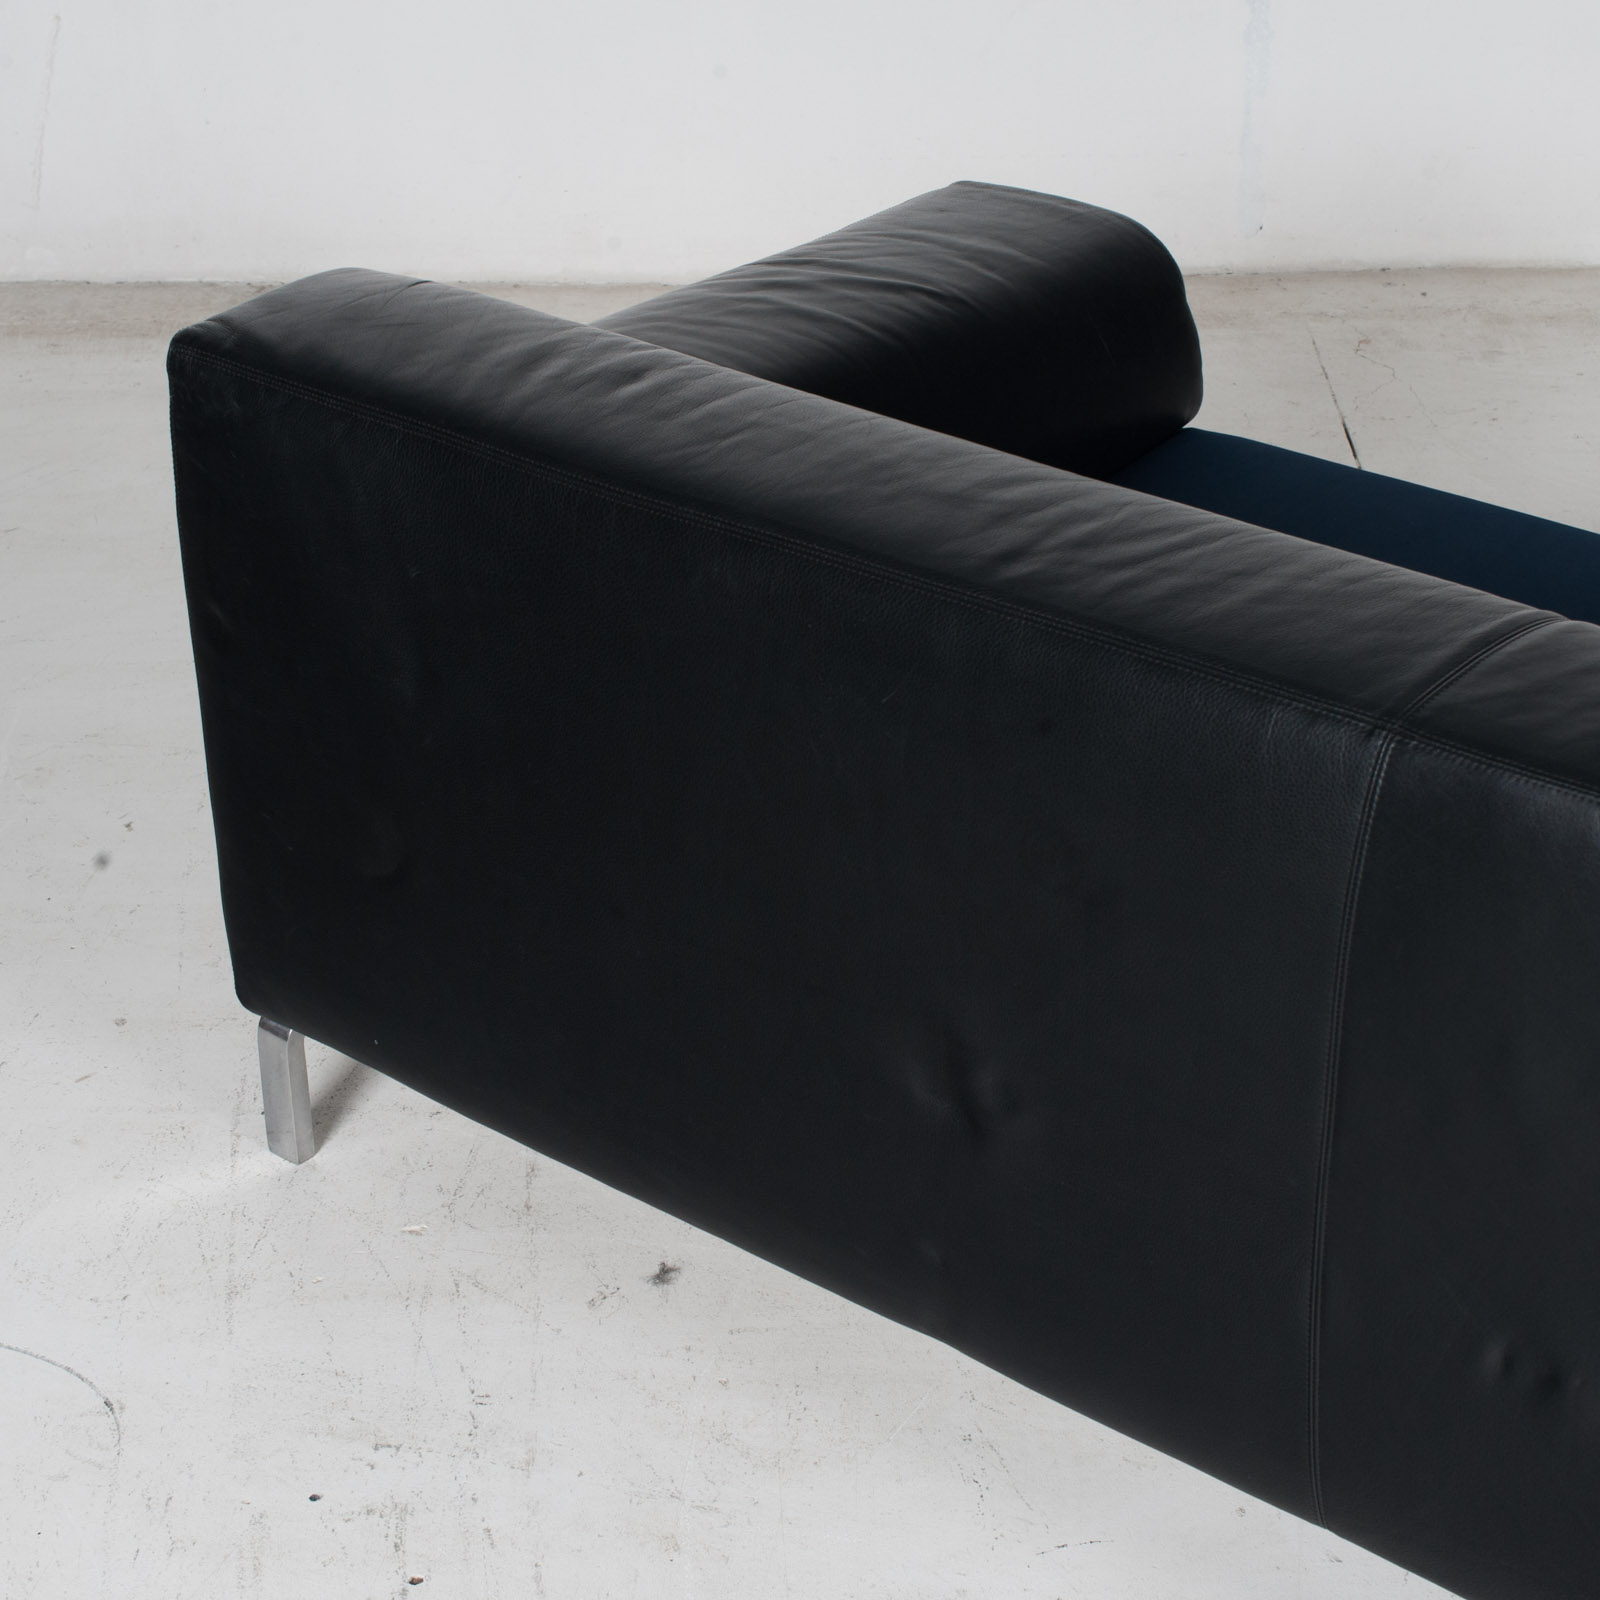 Model Greg 2 Seat Sofa By E. Progetti With Back Upholstered In Black Leather And Seat In Blue Fabric With Chrome Legs, 1960s, Italy 9